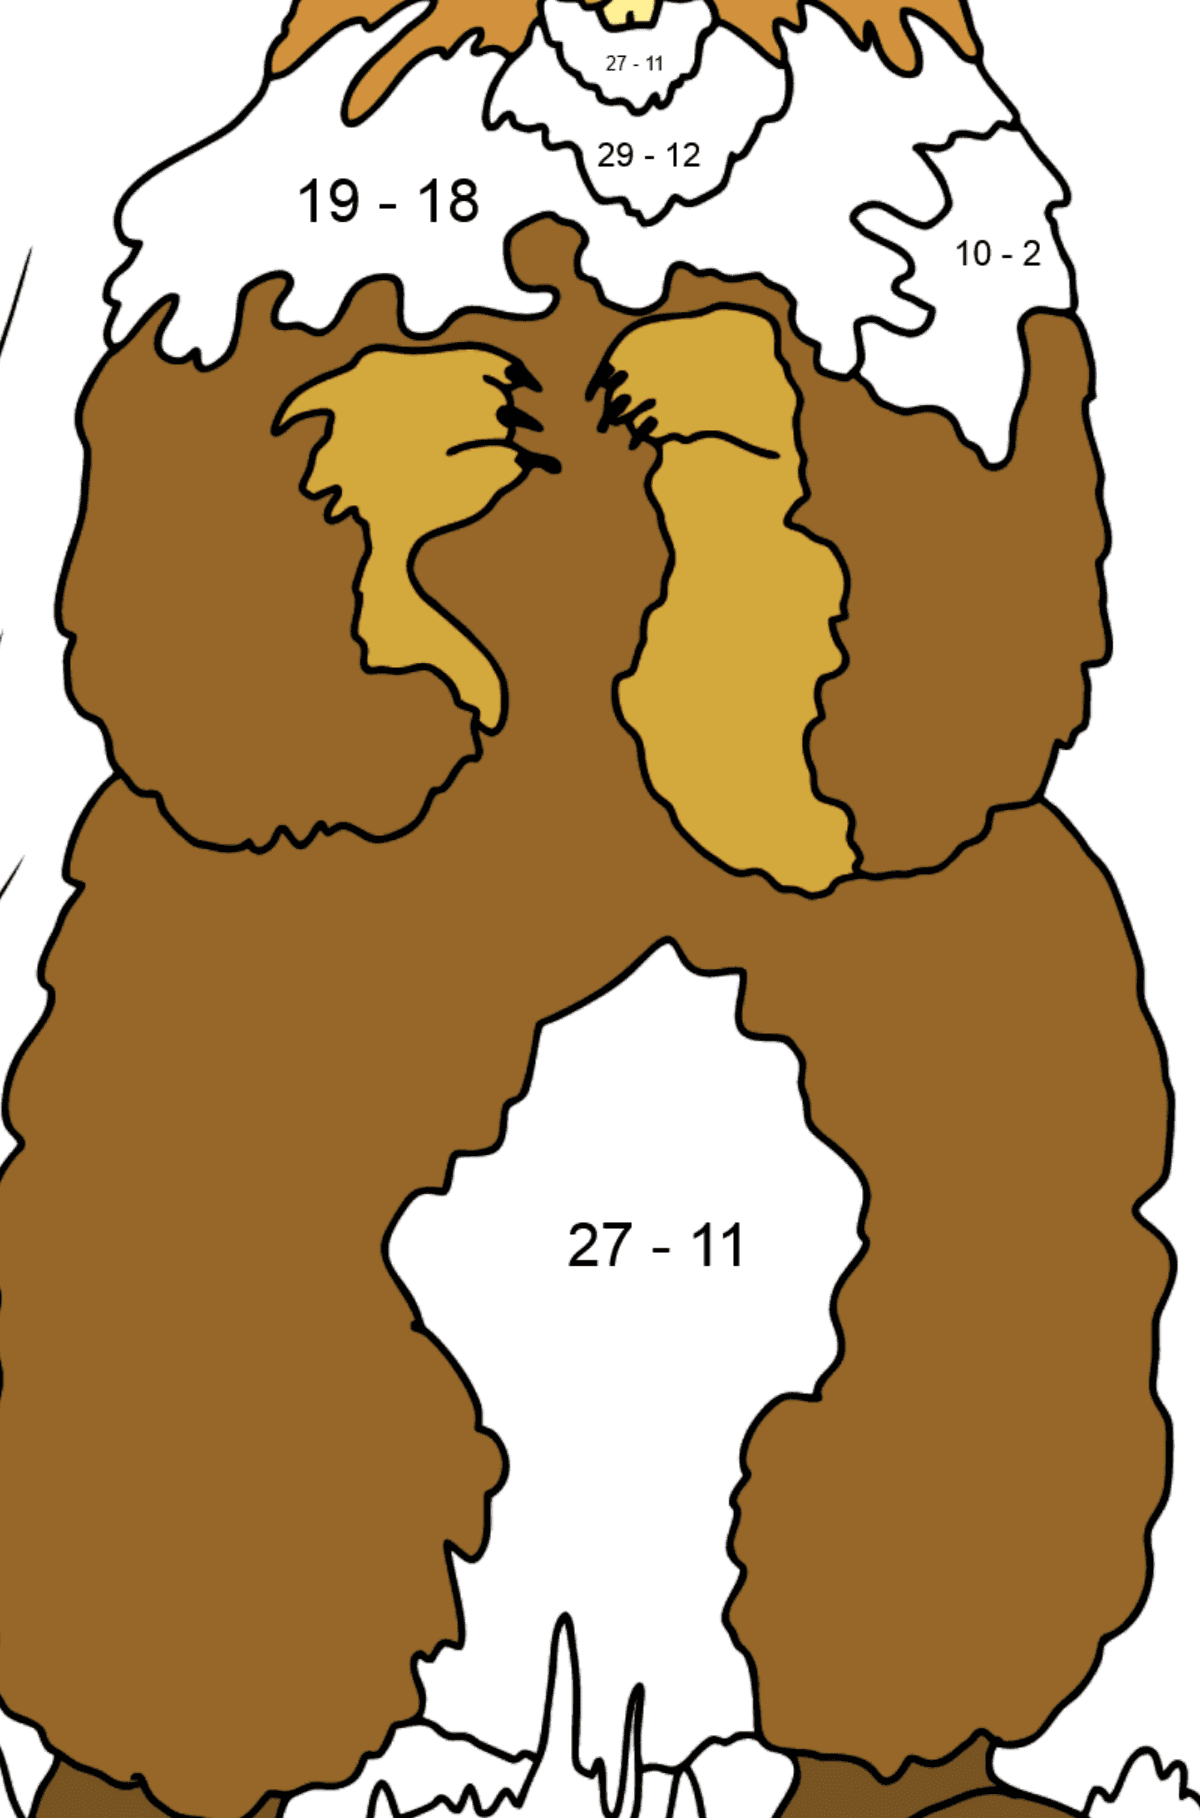 Coloring Page - A Groundhog is Looking out of Its Burrow - Math Coloring - Subtraction for Kids